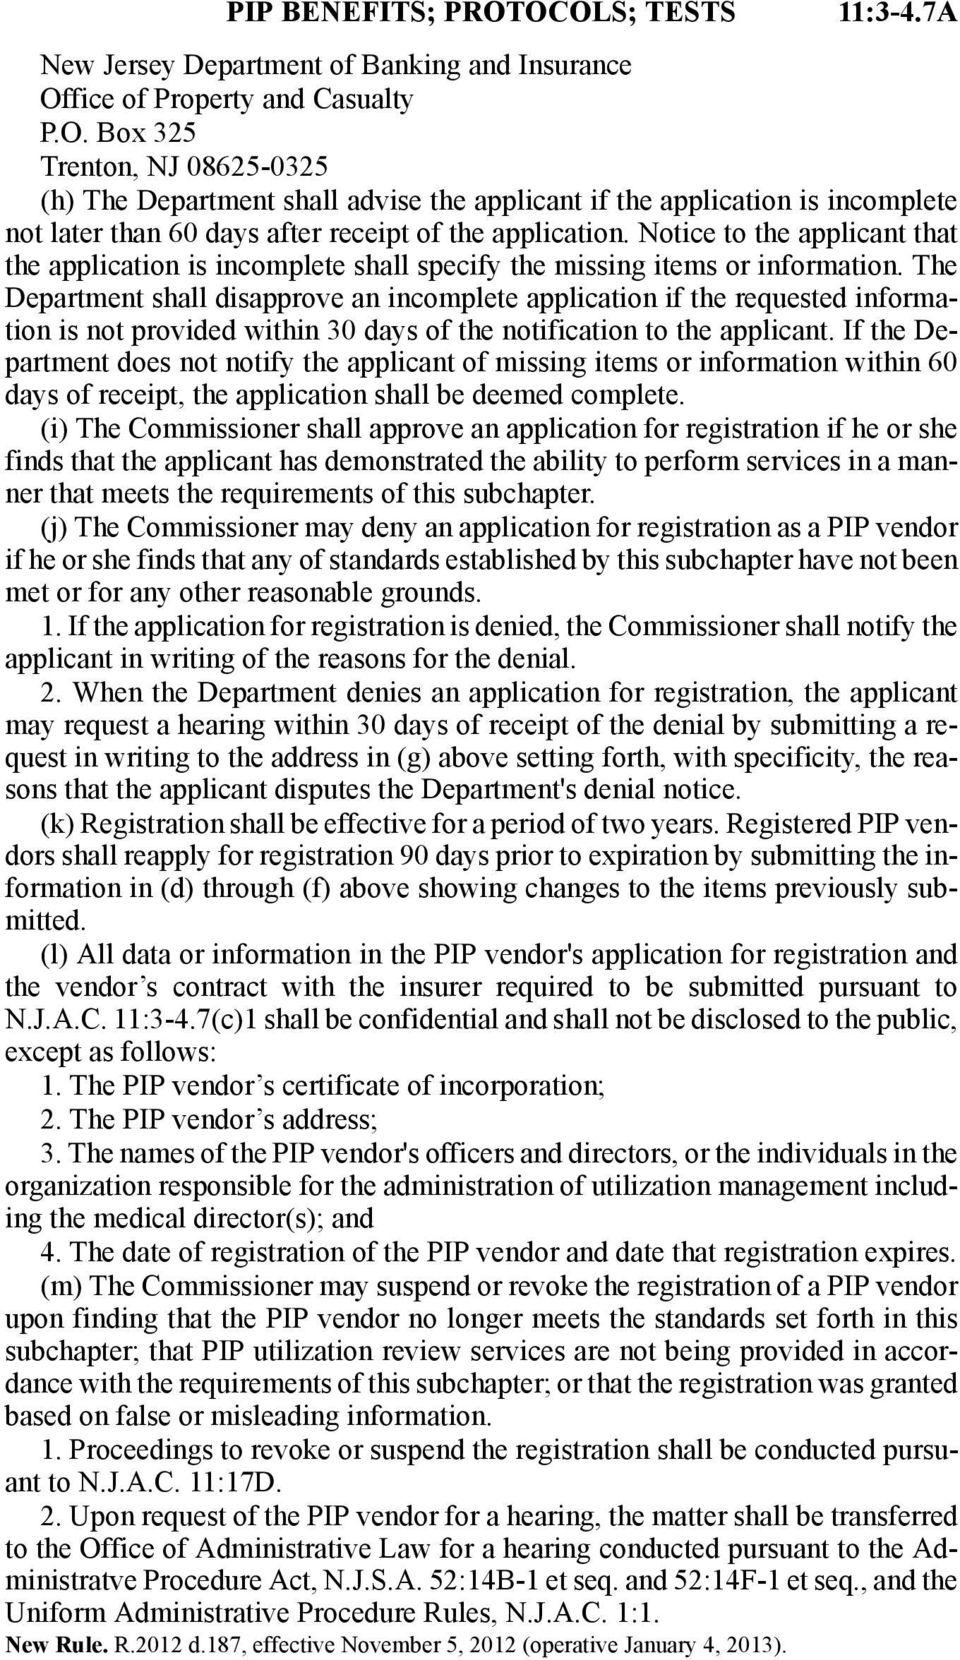 The Department shall disapprove an incomplete application if the requested information is not provided within 30 days of the notification to the applicant.